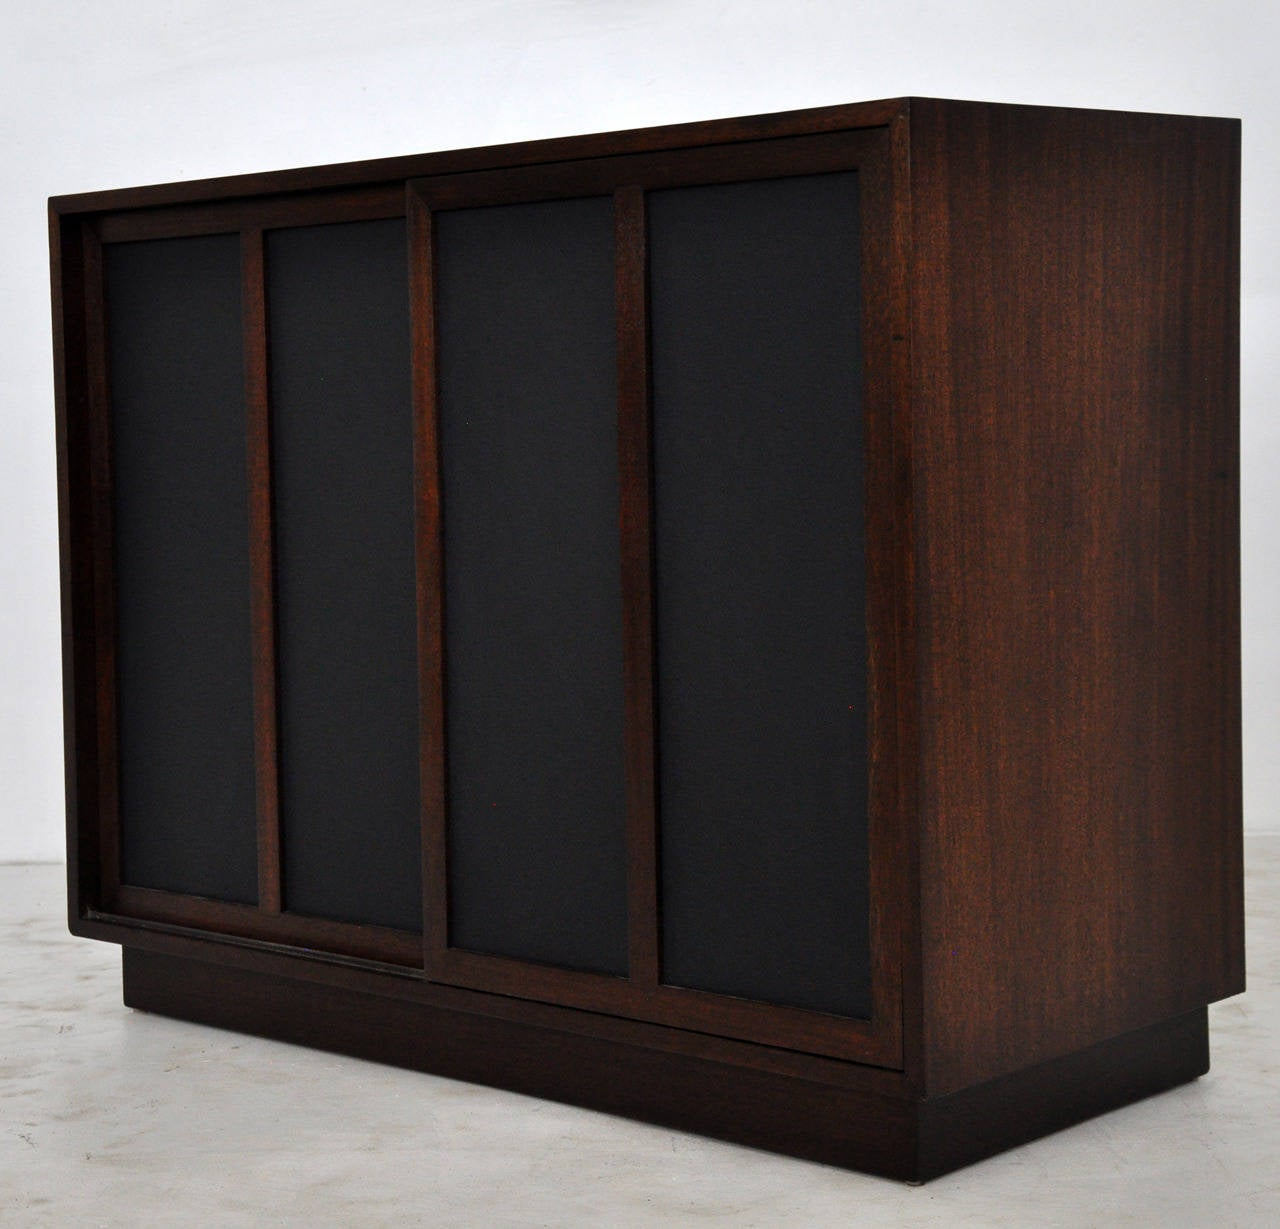 1229 #58362B Harvey Probber Chest With Leather Doors At 1stdibs save image Harvey Doors 43271280